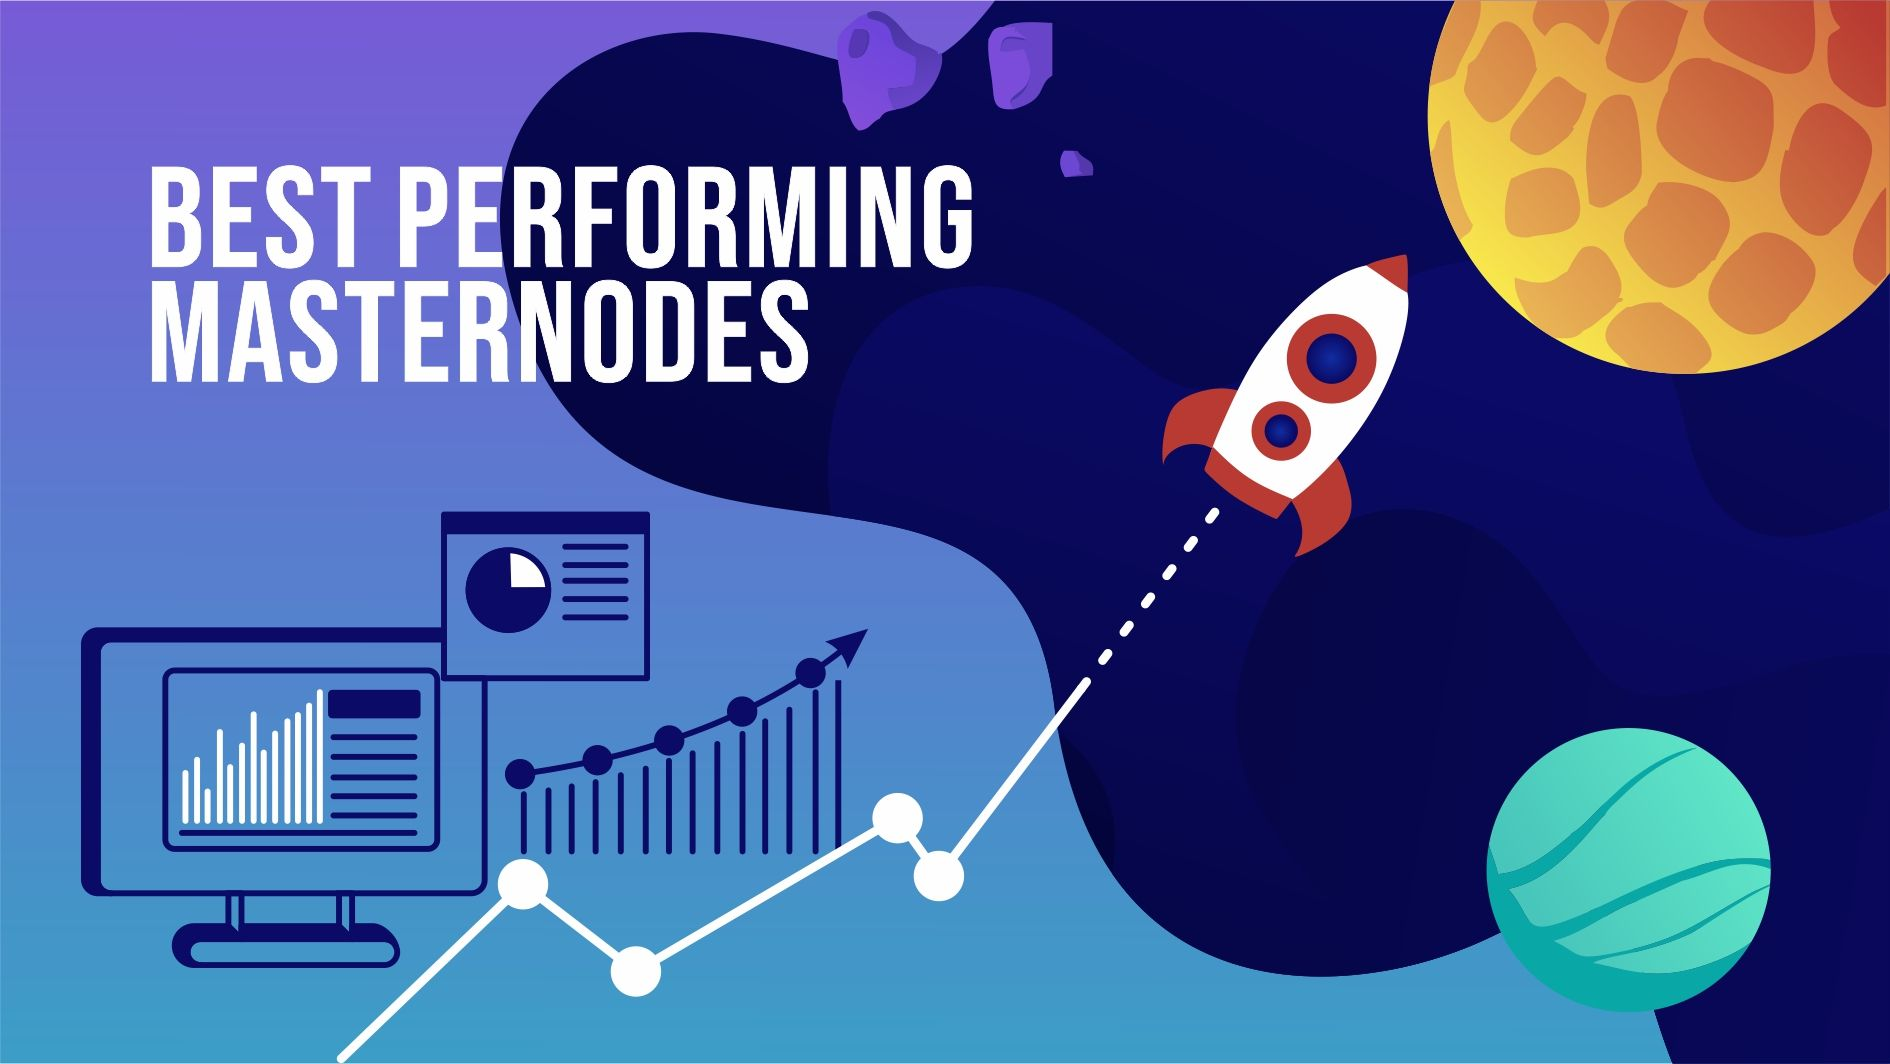 Best Performing Masternodes #week15